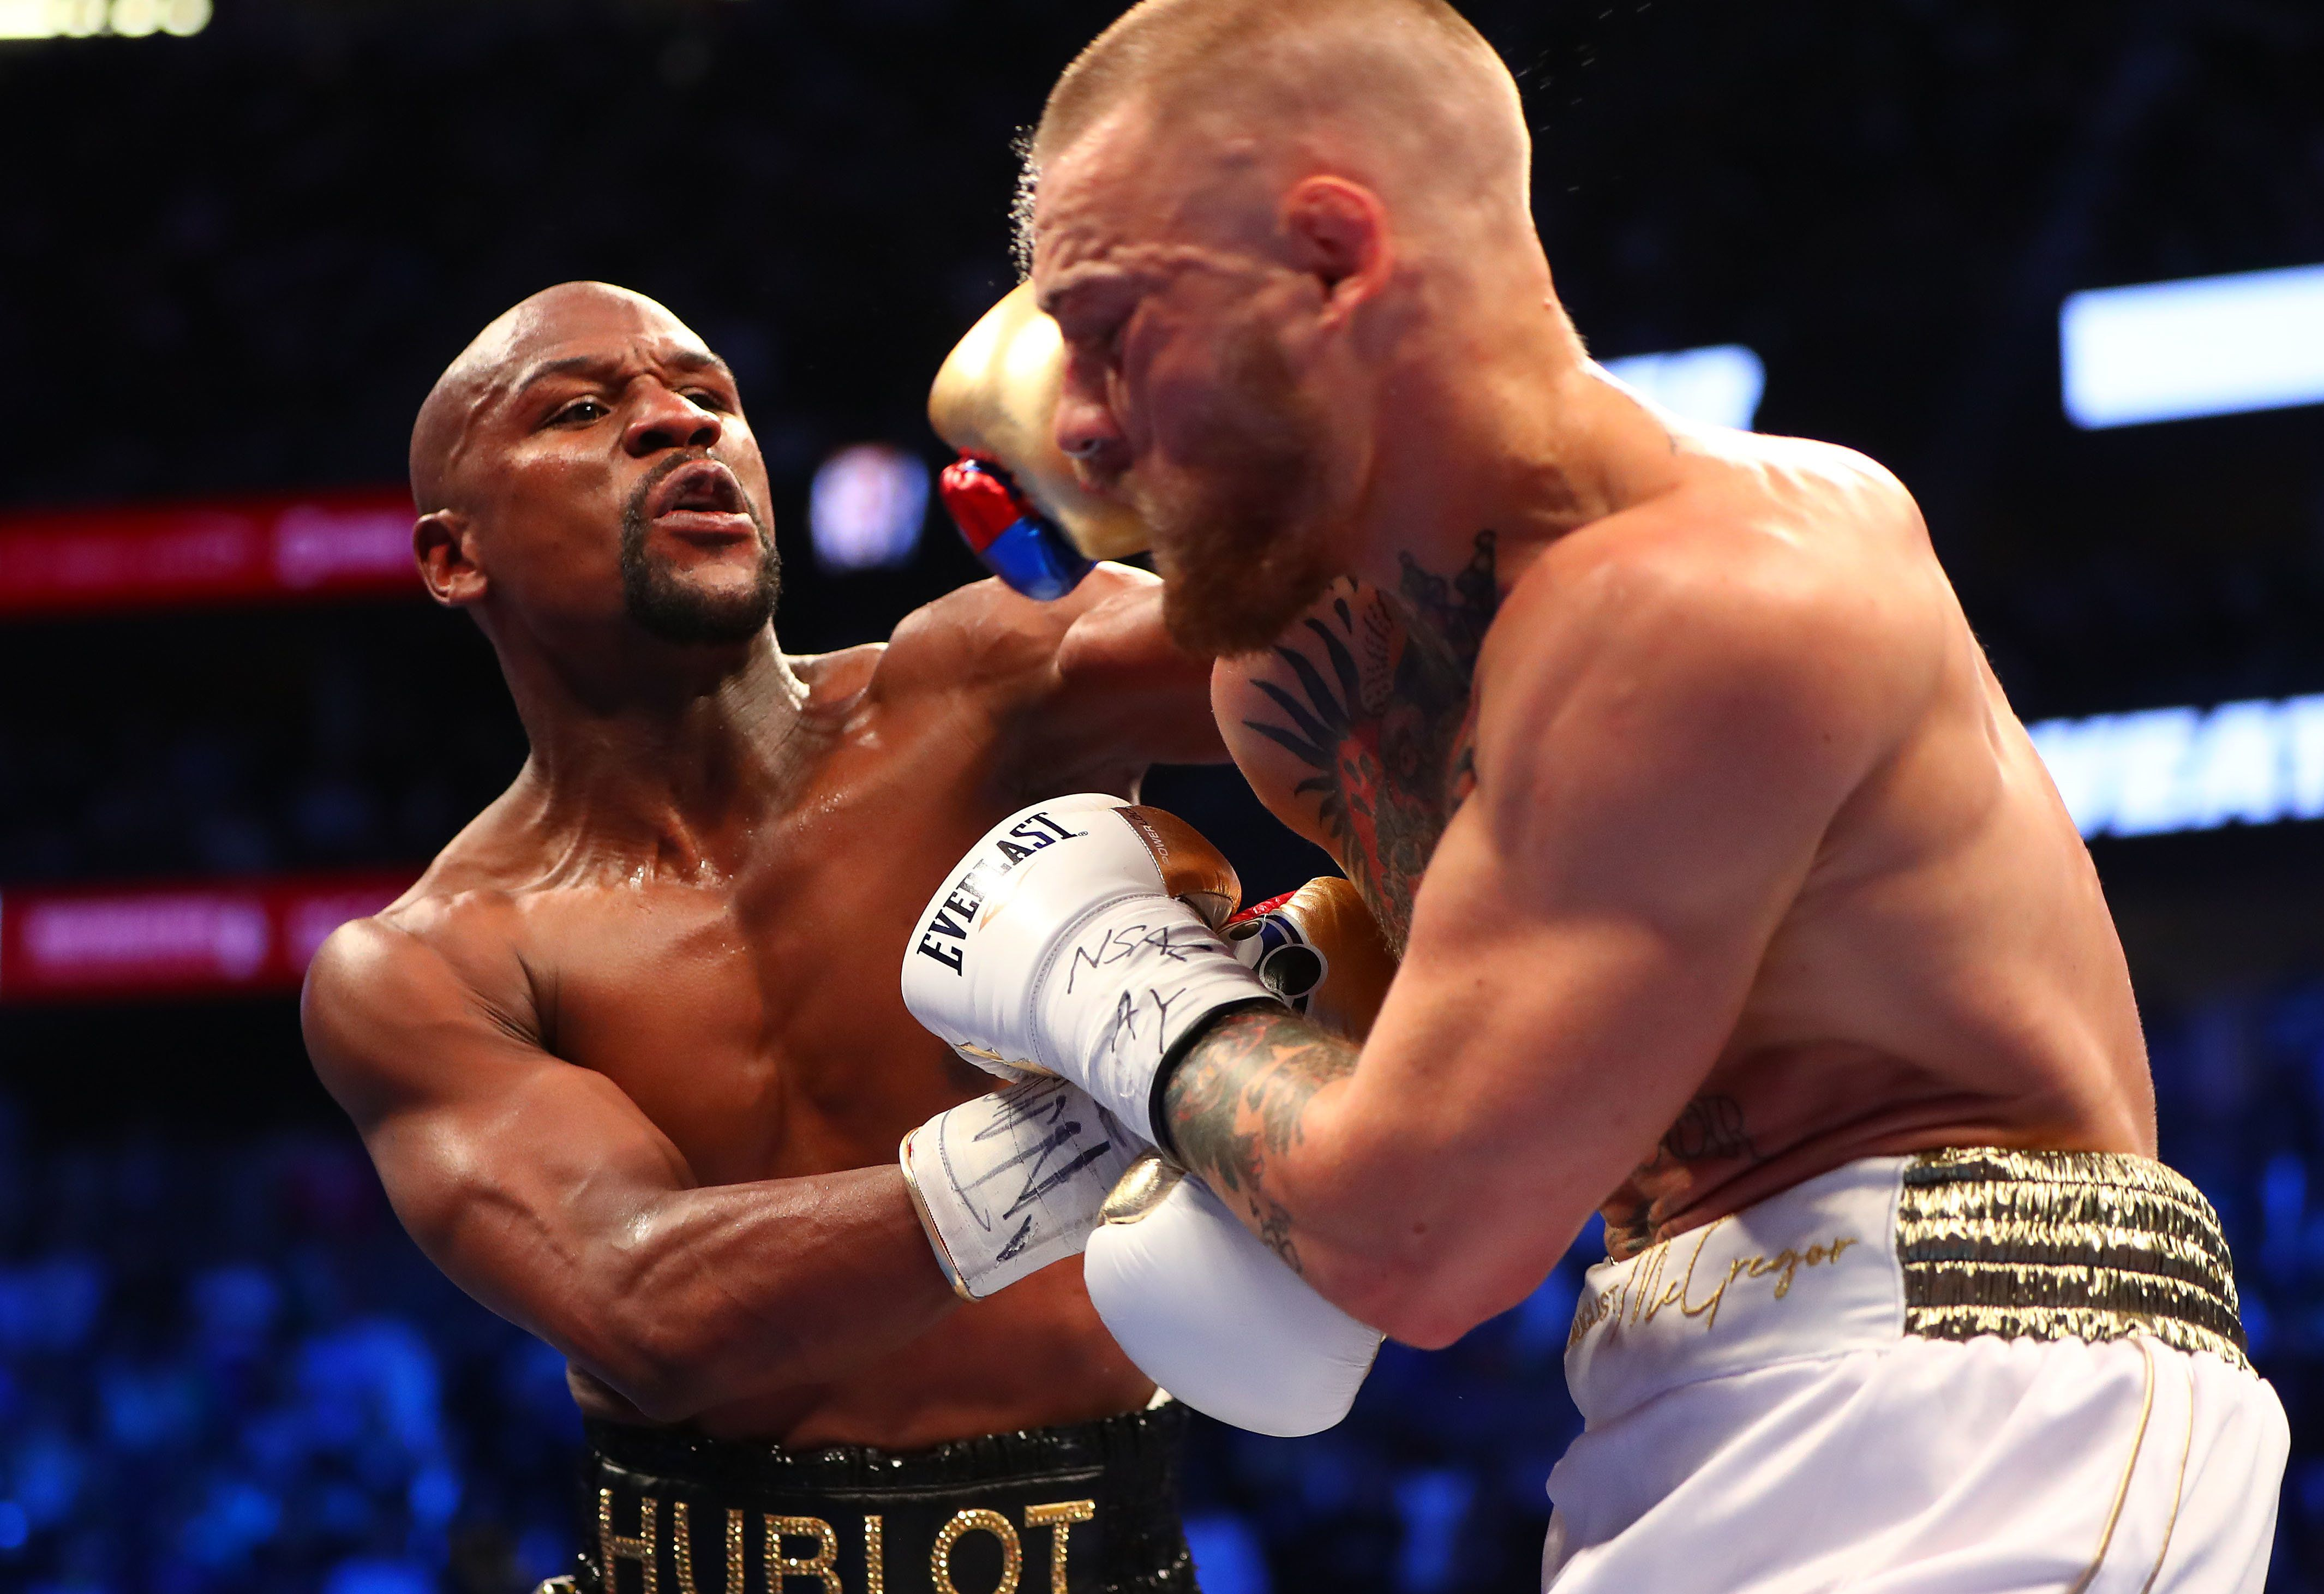 Floyd Mayweather Defeats Conor McGregor By Technical Knockout In Tenth